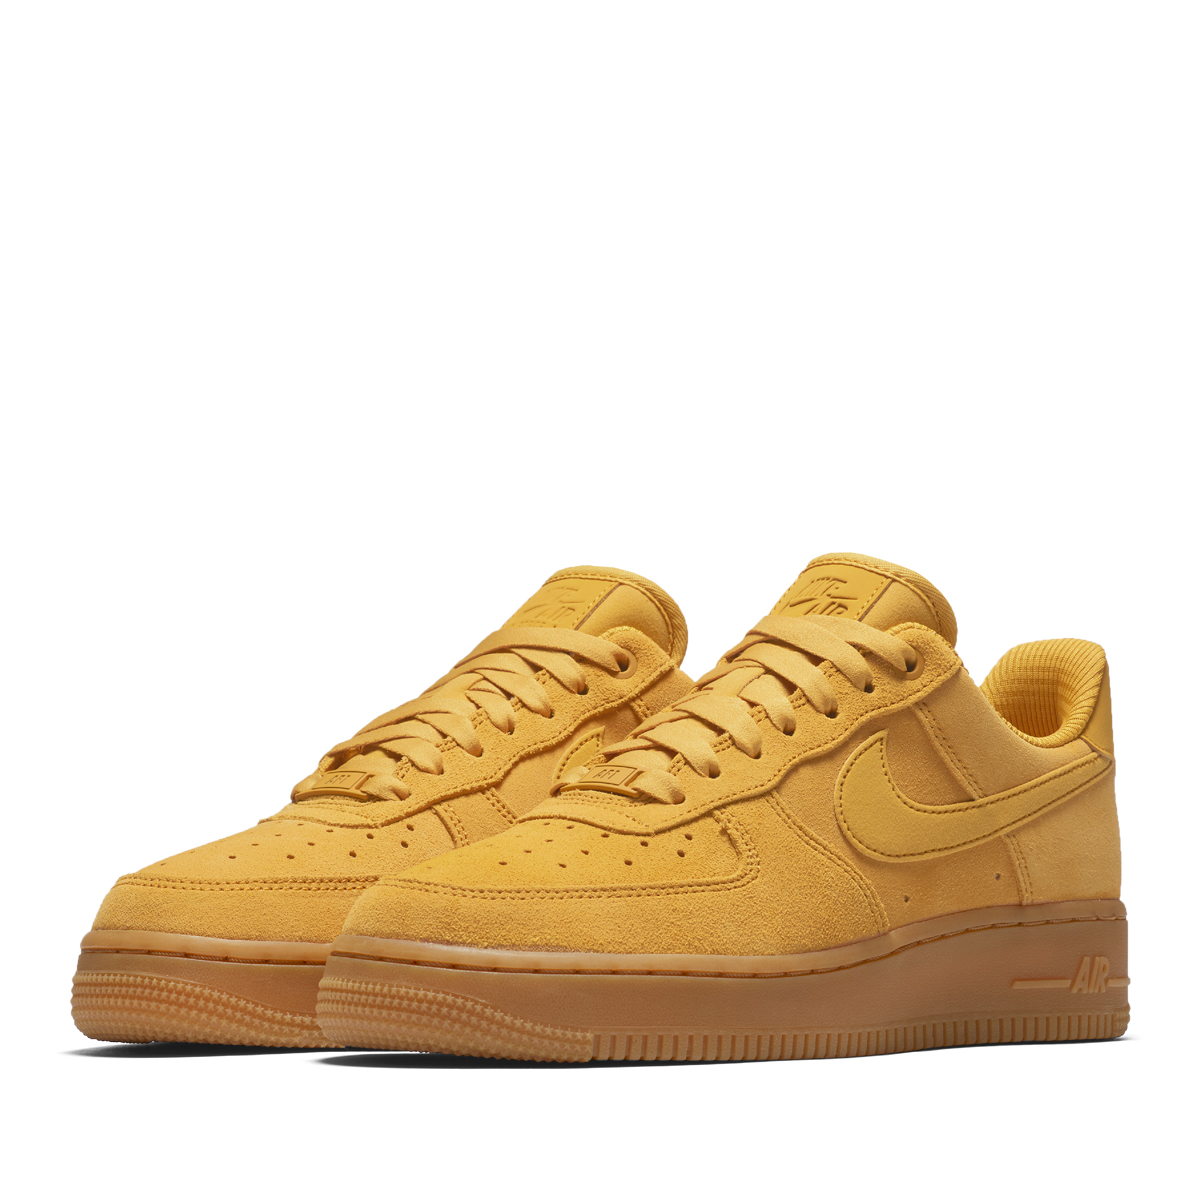 The masterpiece of the Nike basketball released in 1982. The constant  seller model that continues still attracting a fan after time when a  classic ... 7b6a3f42f